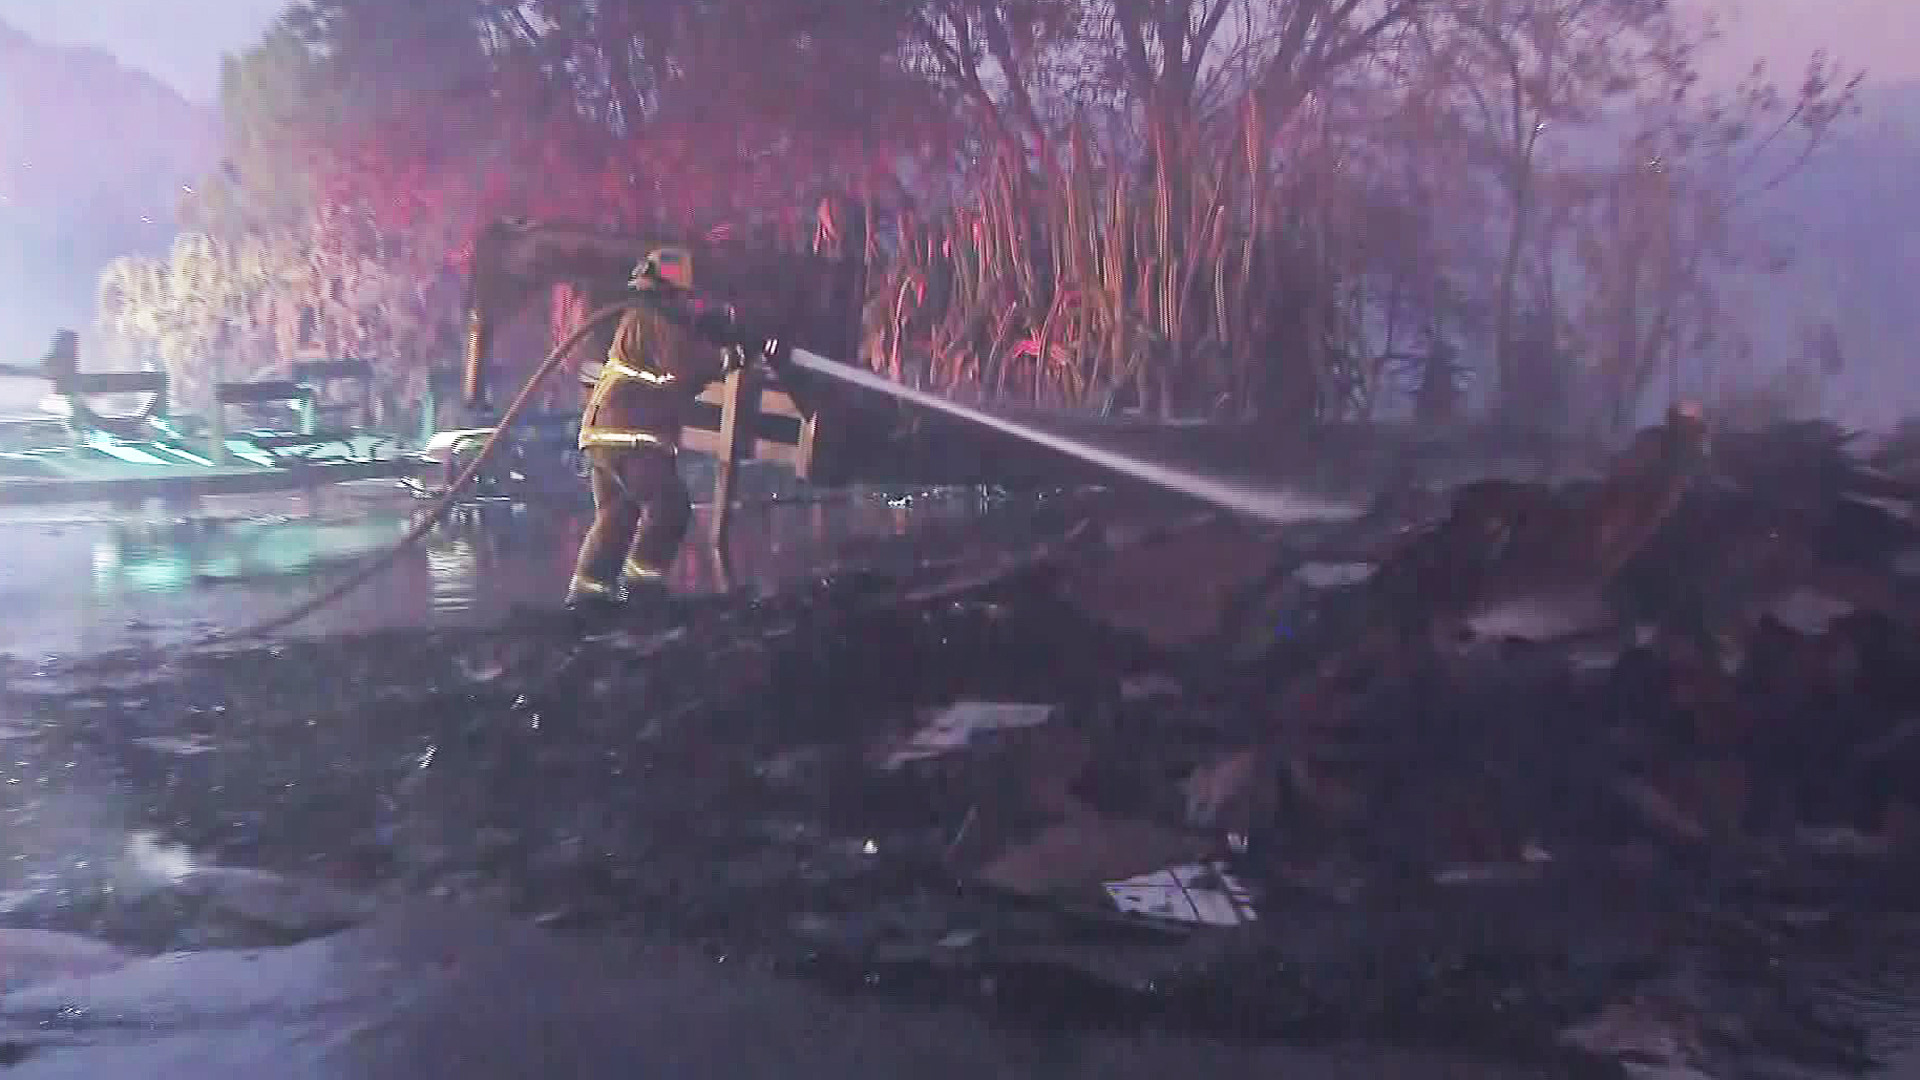 A firefighter battling the 46 Fire douses some burning material on Oct. 31, 2019. (Credit: KTLA)